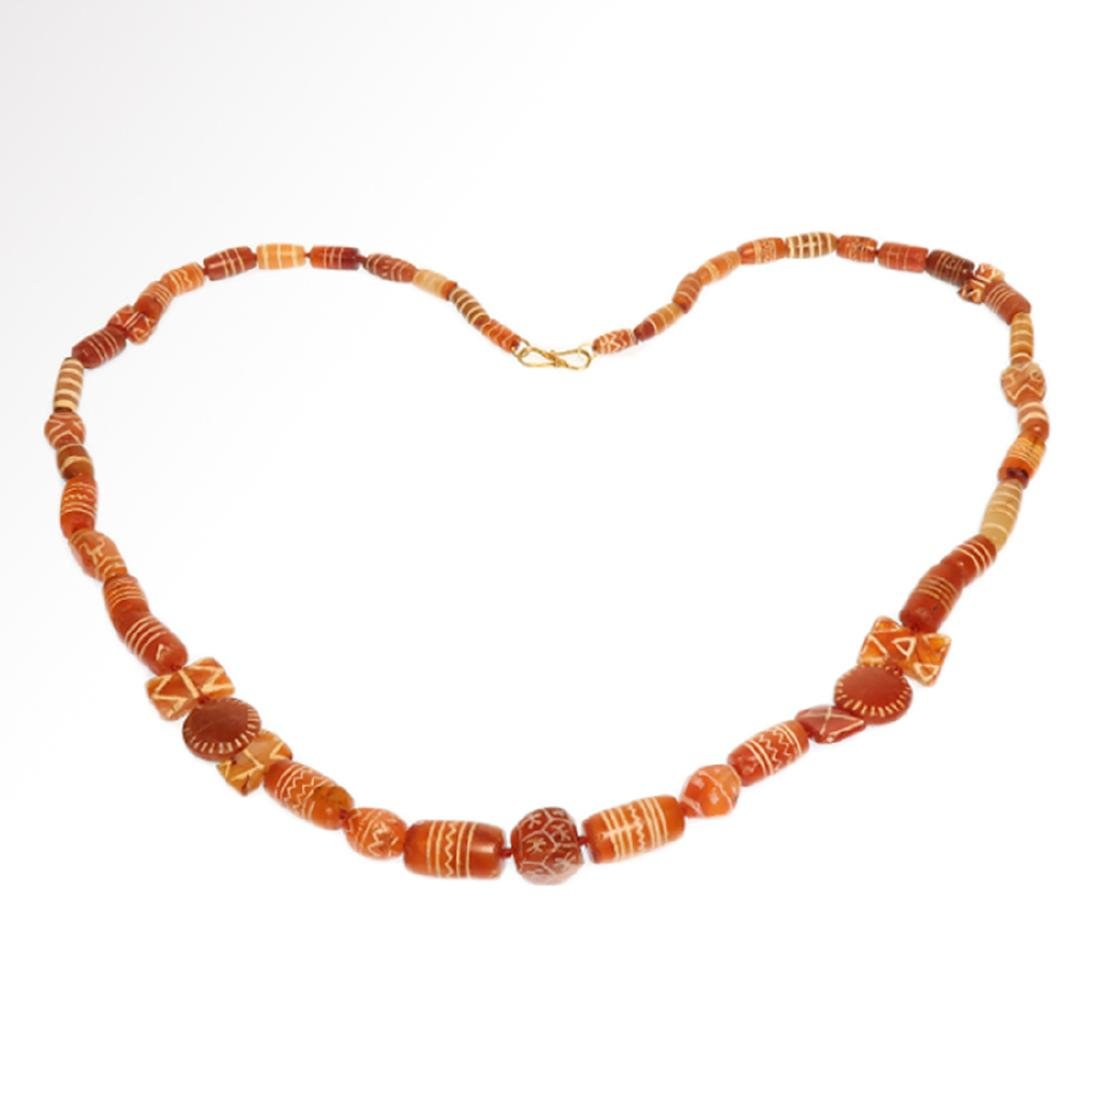 Cornelian Etched Beads Necklace, Near Eastern, 1st - 2